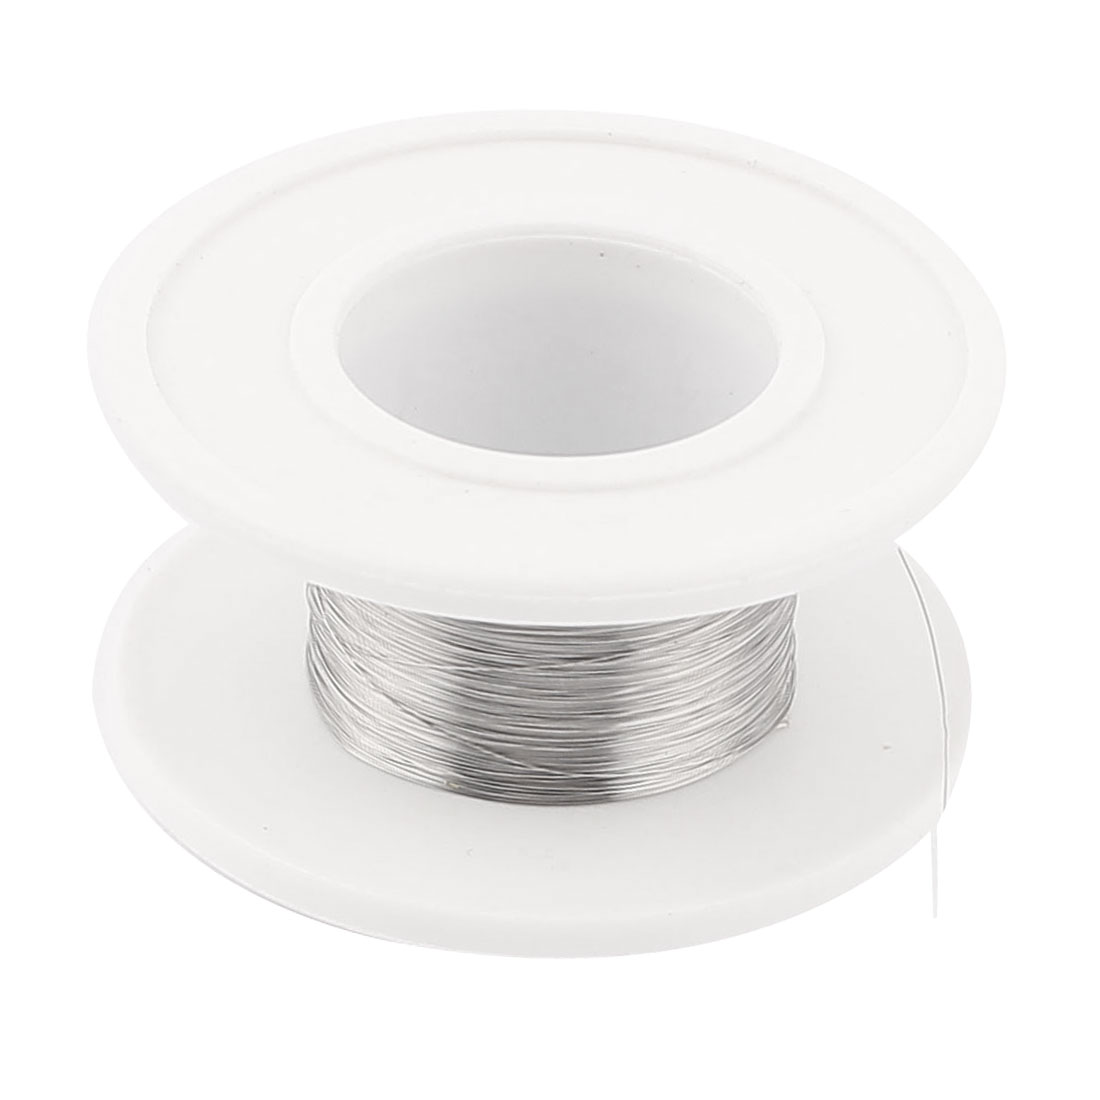 Uxcell Nichrome 80 0.1Mm 38 Gauge Awg 25M Roll 143.9 Ohms/M Heater Wire Length .   25m  цена и фото